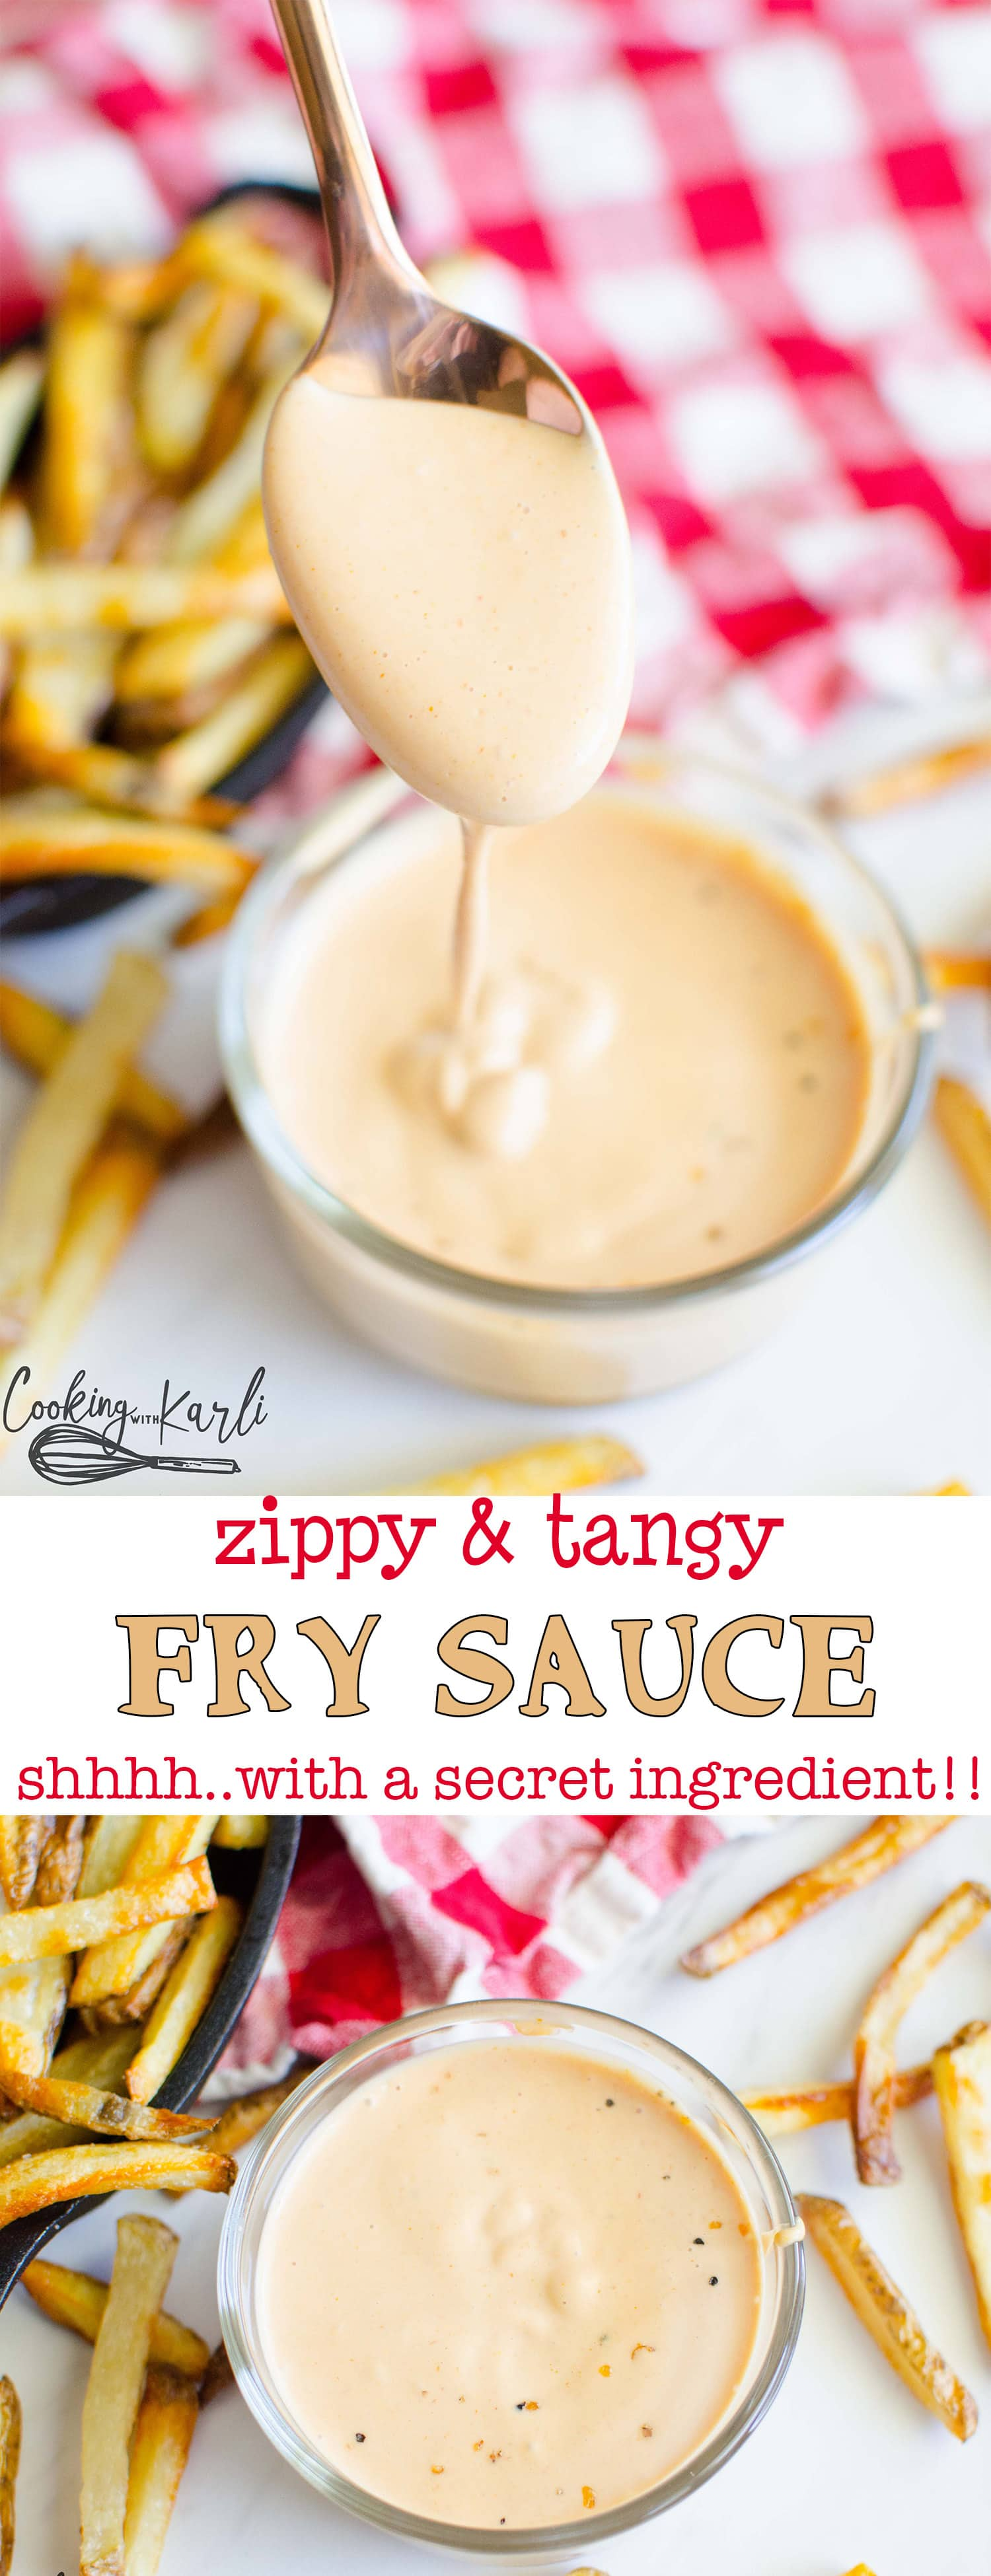 Fry Sauce is a french fry dipping sauce popular in Utah. Made with mayo, ketchup, mustard, vinegar and a secret ingredient, this recipe is definitely a keeper! Find out why my home state iscrazyabout fry sauce! |Cooking with Karli| #frenchfries #frysauce #recipe #mayochup #dipping #dippingsauce #condiments